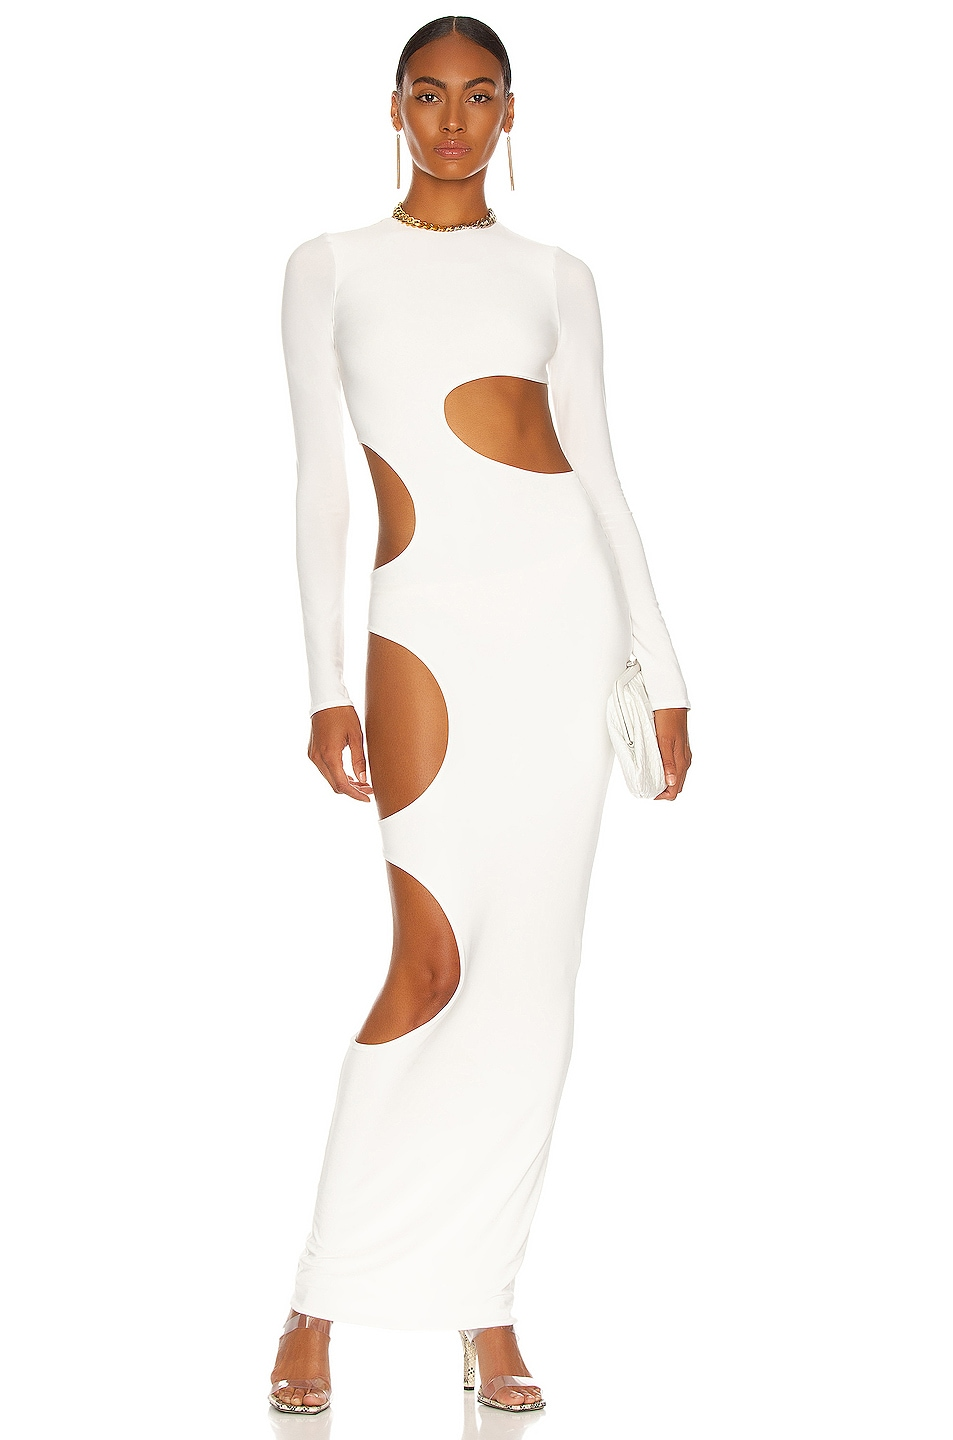 Cutout Slit Gown by LAQUAN SMITH, available on fwrd.com for $1300 Olivia Culpo Dress Exact Product